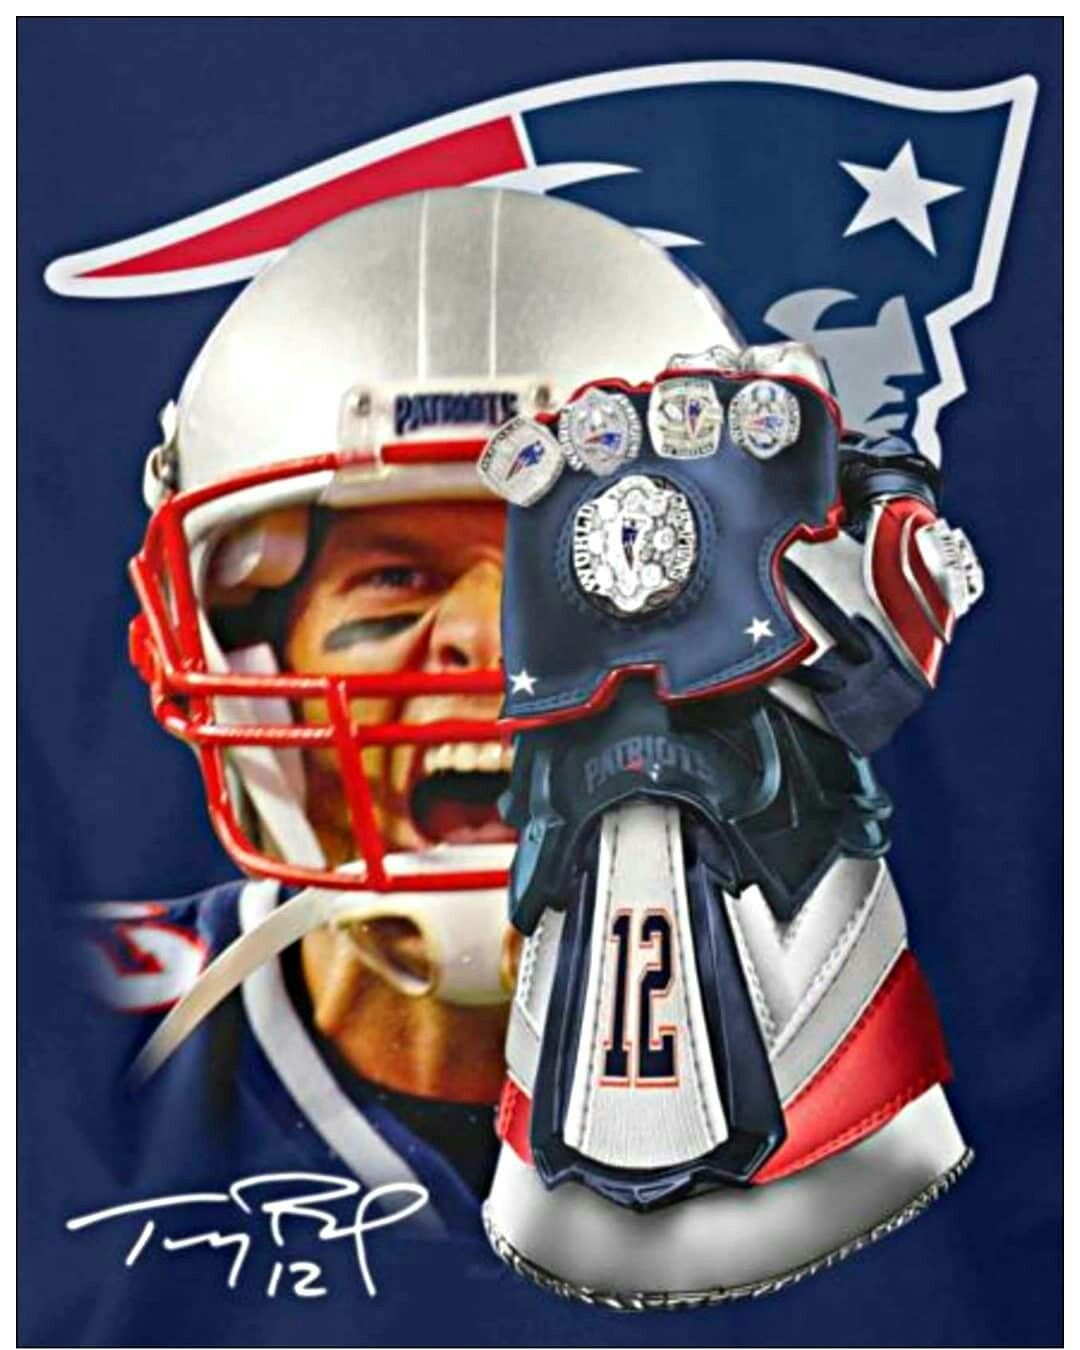 Pin By Cherelle Renee On My Team New England Patriots Football New England Patriots Patriots Cheerleaders